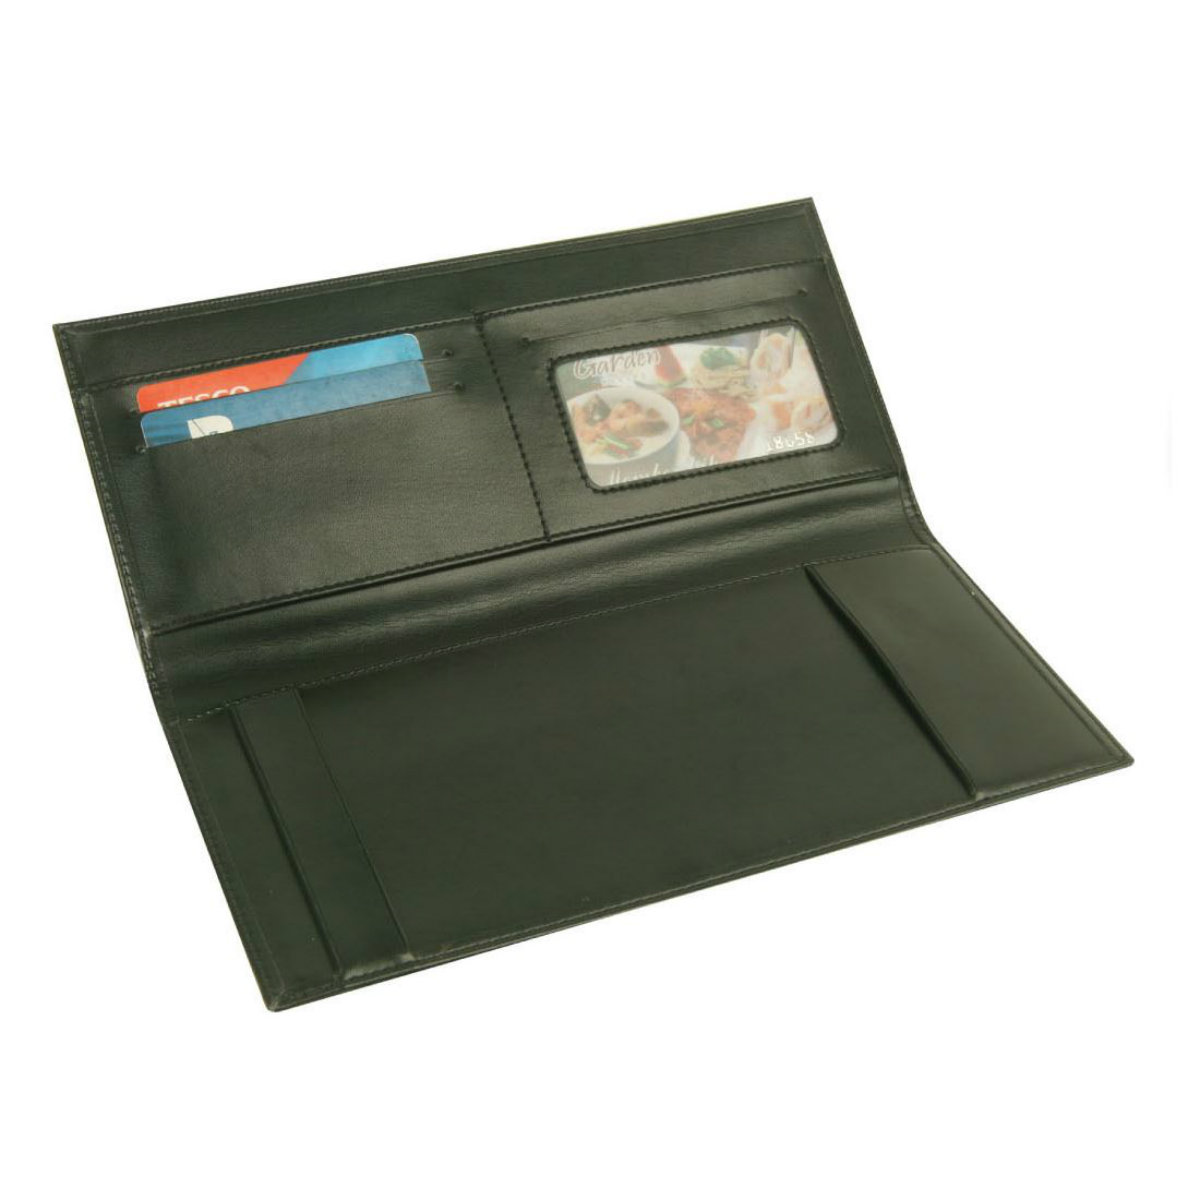 LS03-2 Cheque Book Holder